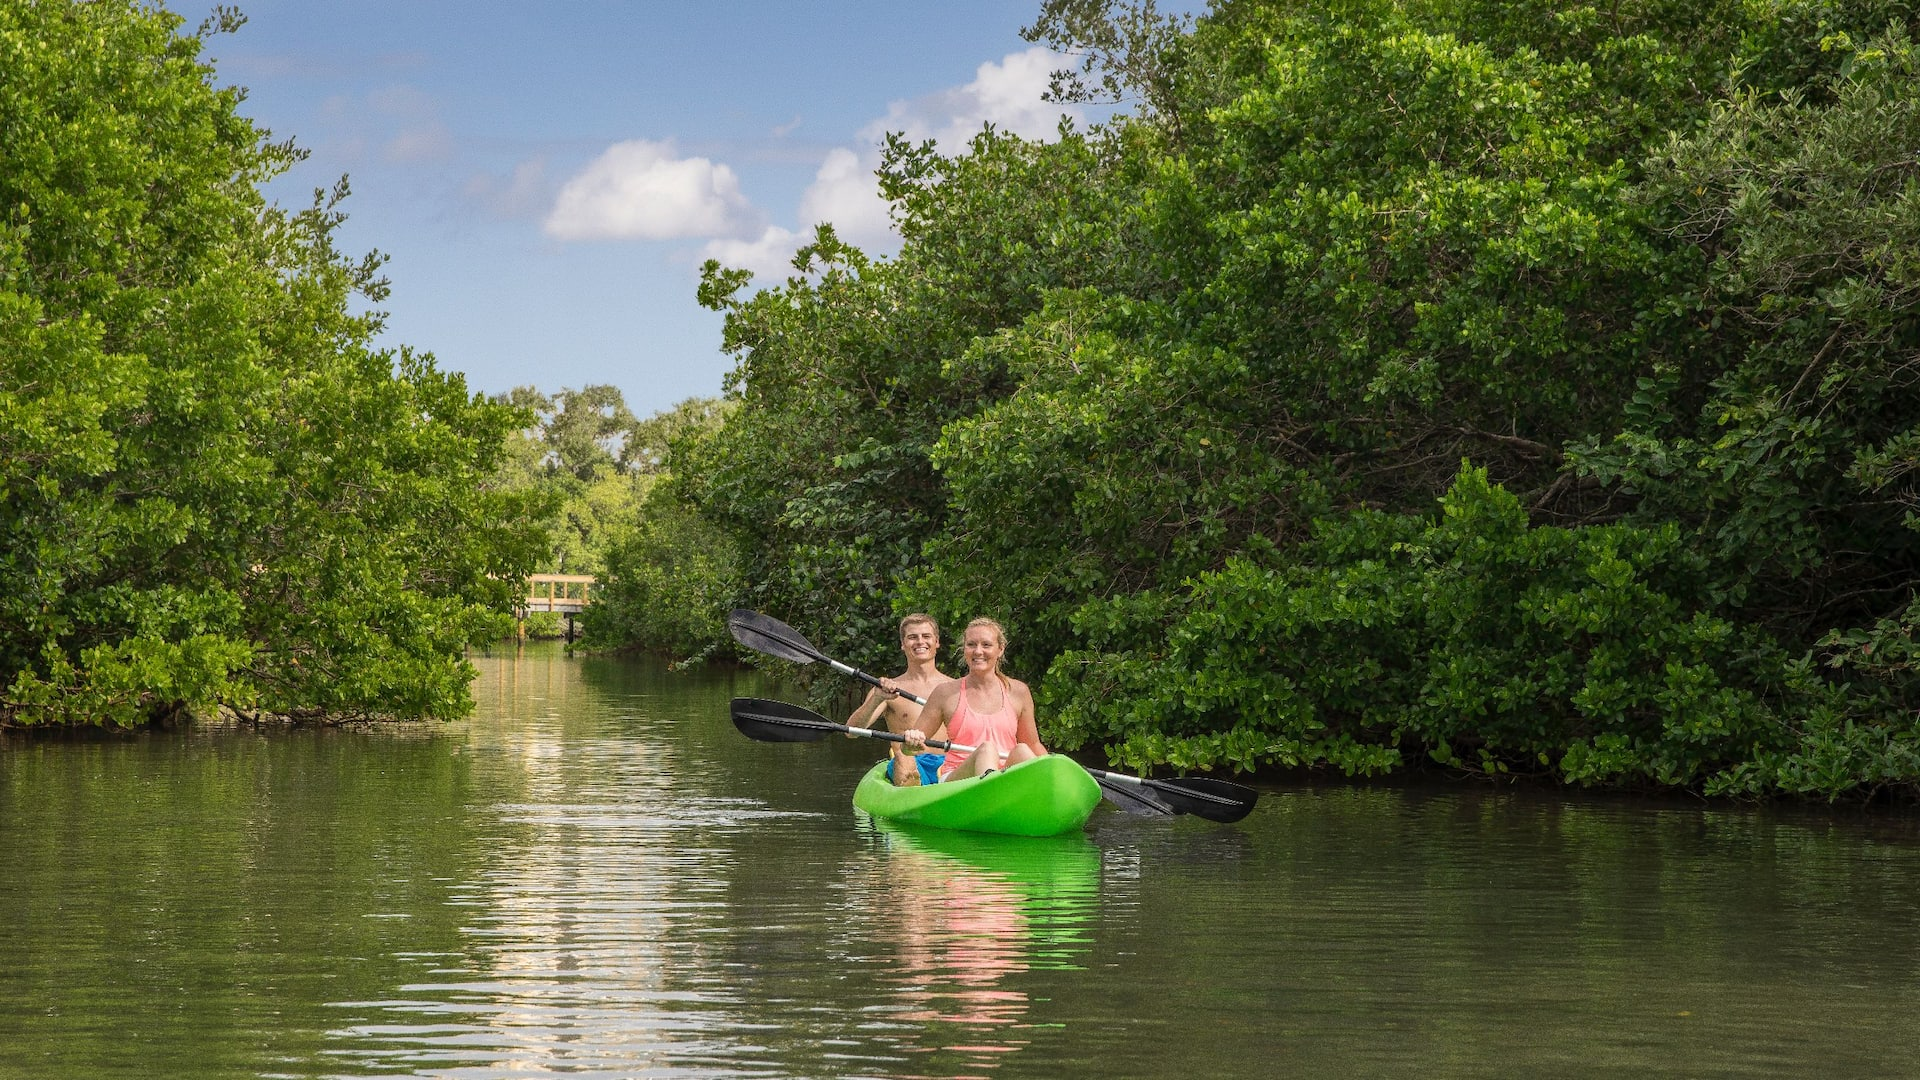 Kayaking at Hyatt Regency Sarasota